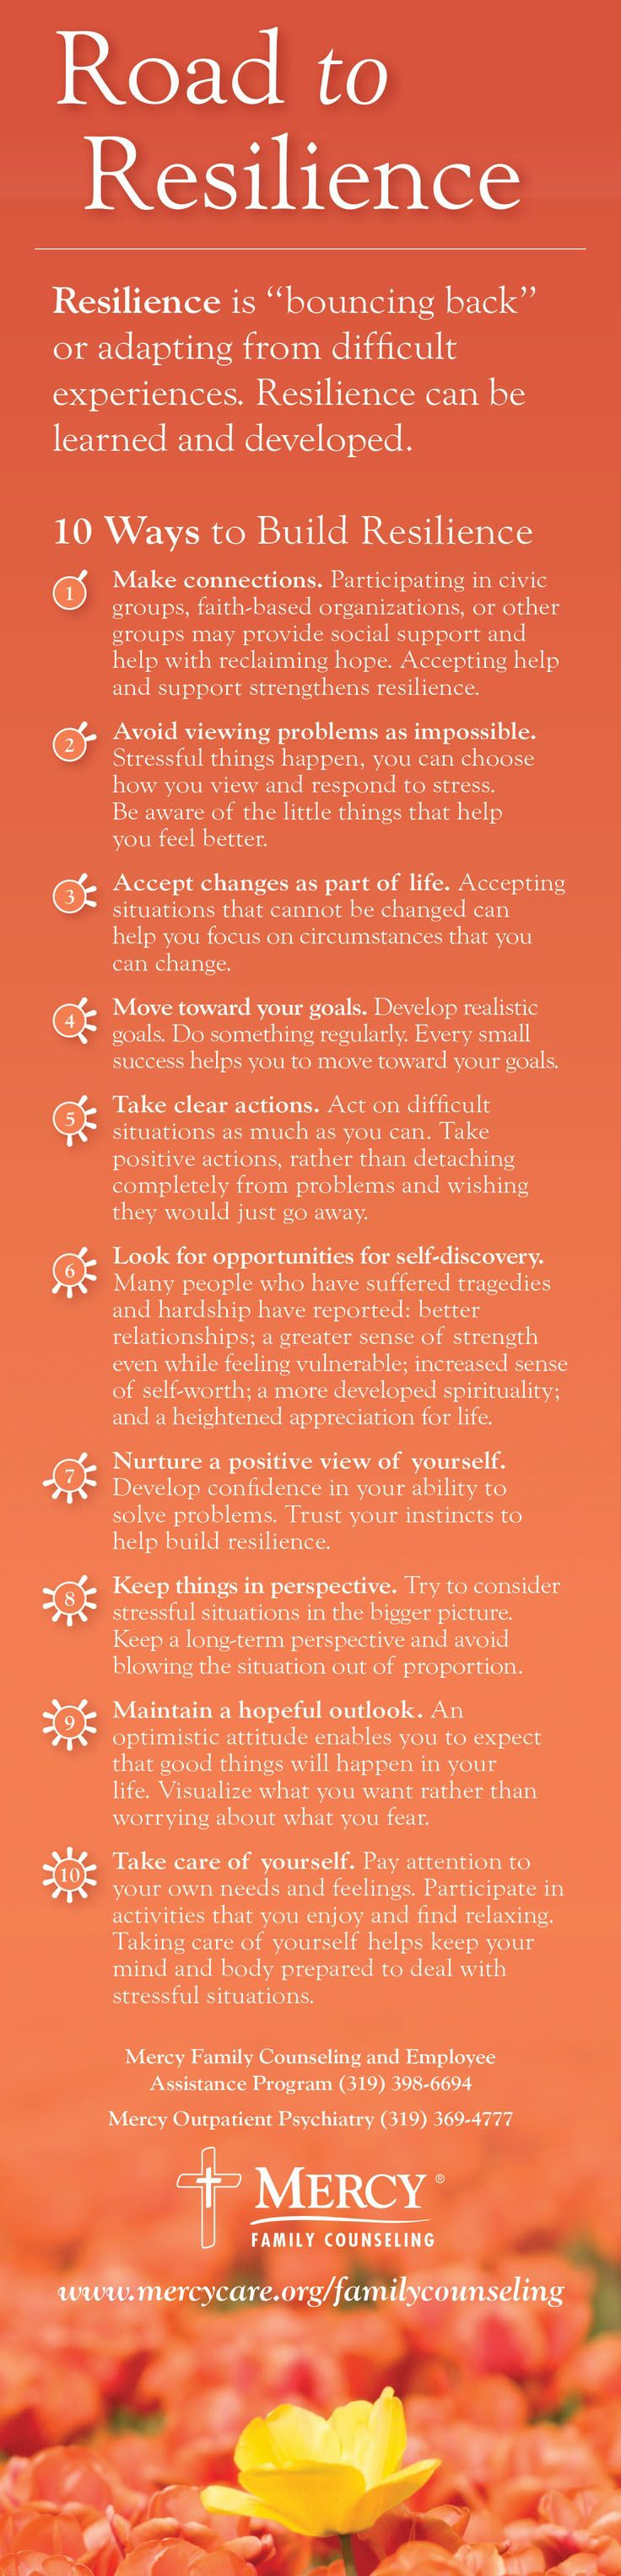 10 #tips to improve your resilience #PersoanlDevelopment #success www.socialmediamamma.com